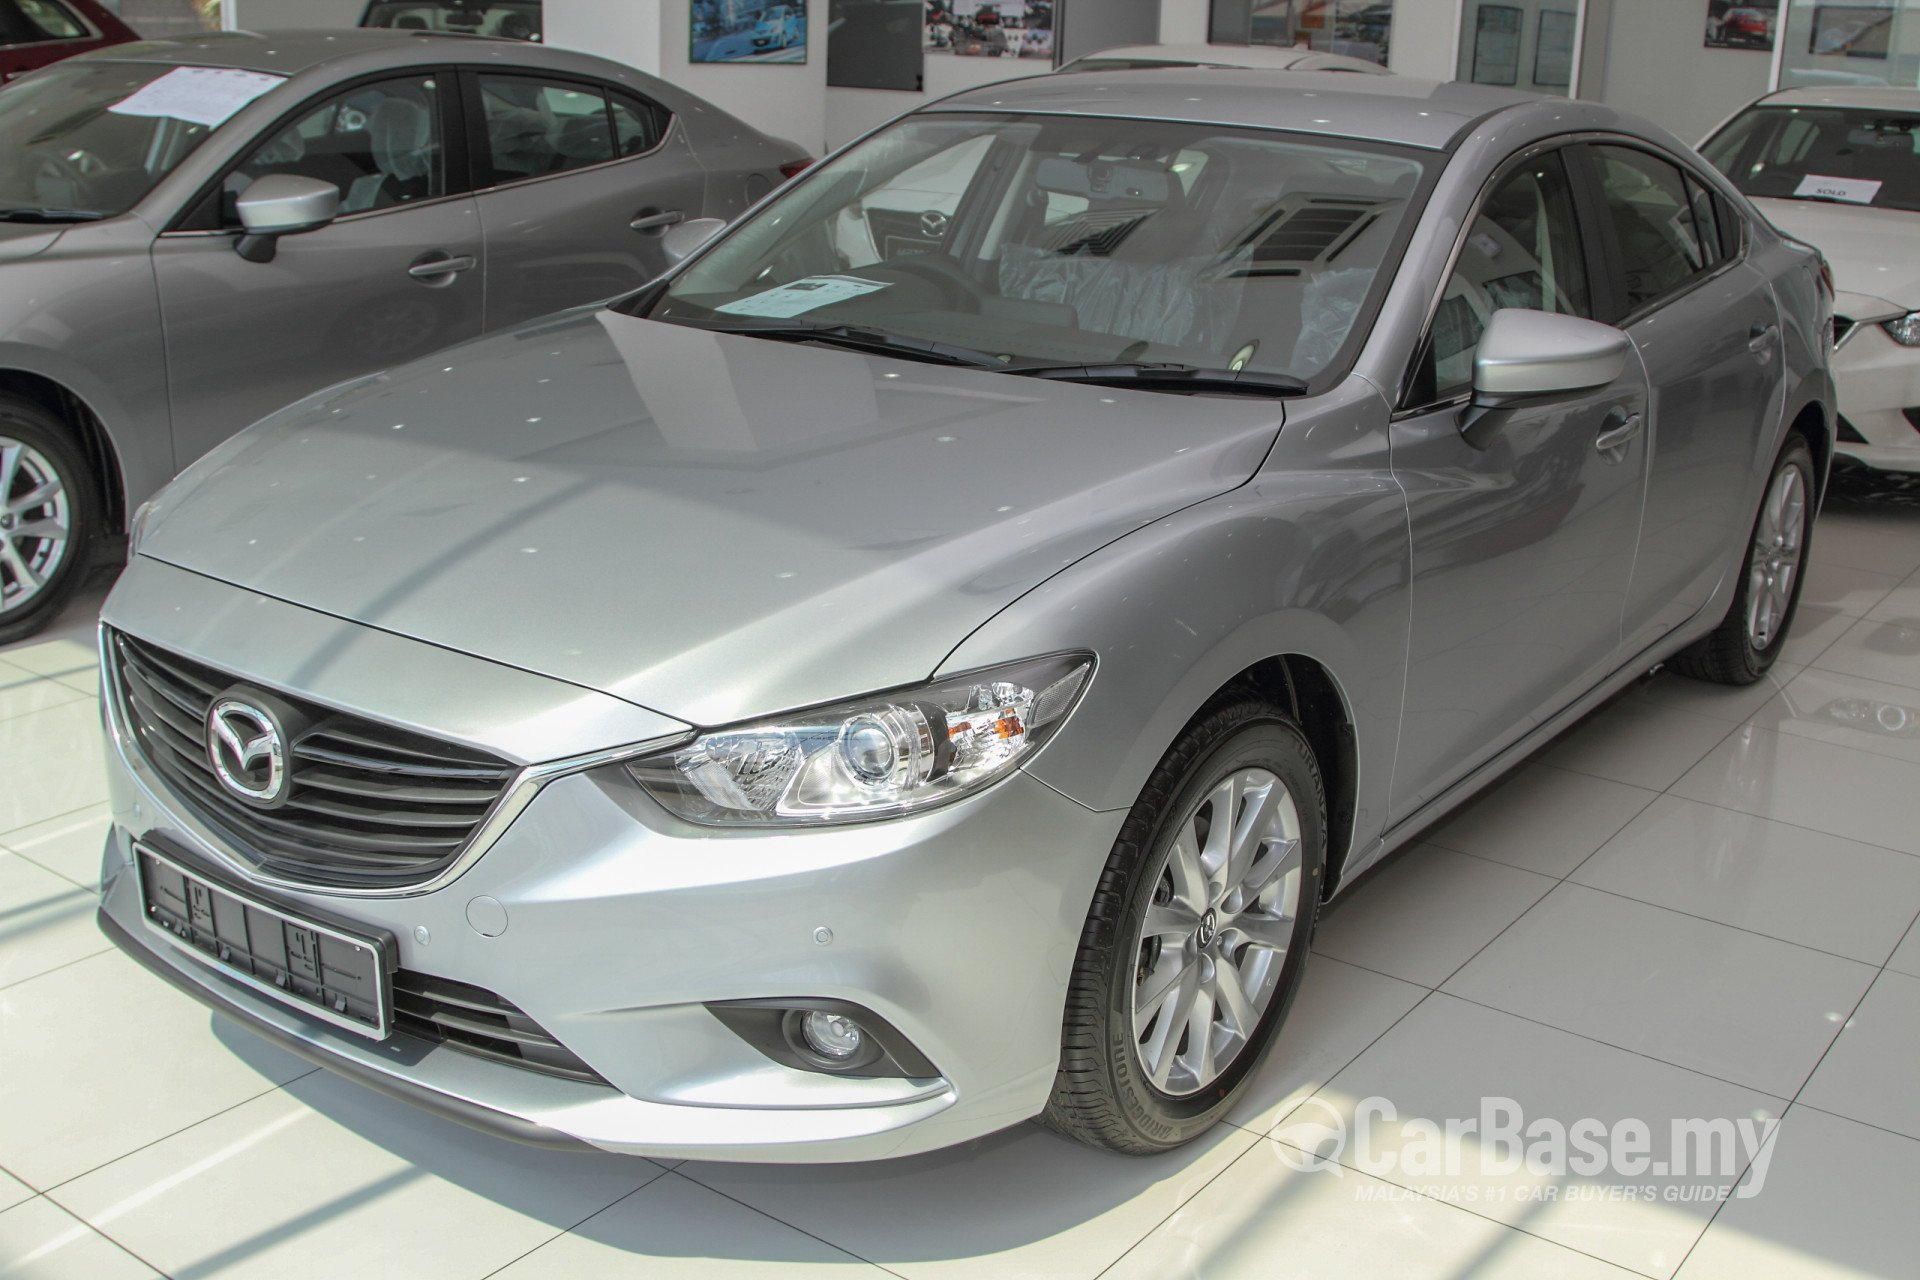 mazda 6 sedan gj facelift 2015 exterior image in malaysia reviews specs prices. Black Bedroom Furniture Sets. Home Design Ideas